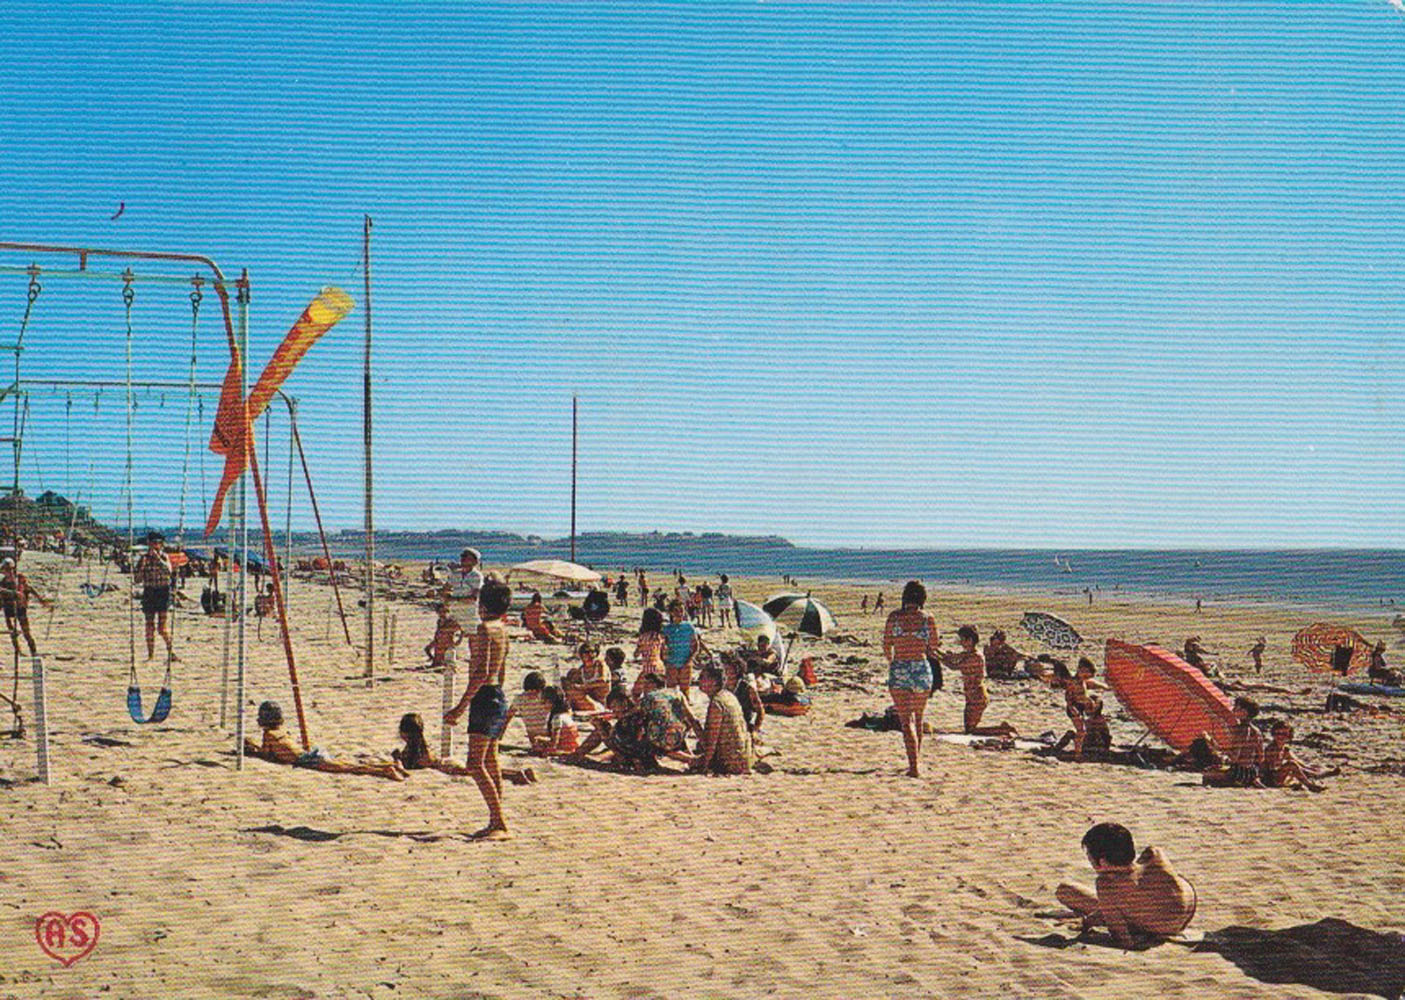 1974 St Martin Plage 1 © collection Jean Claude Ferret